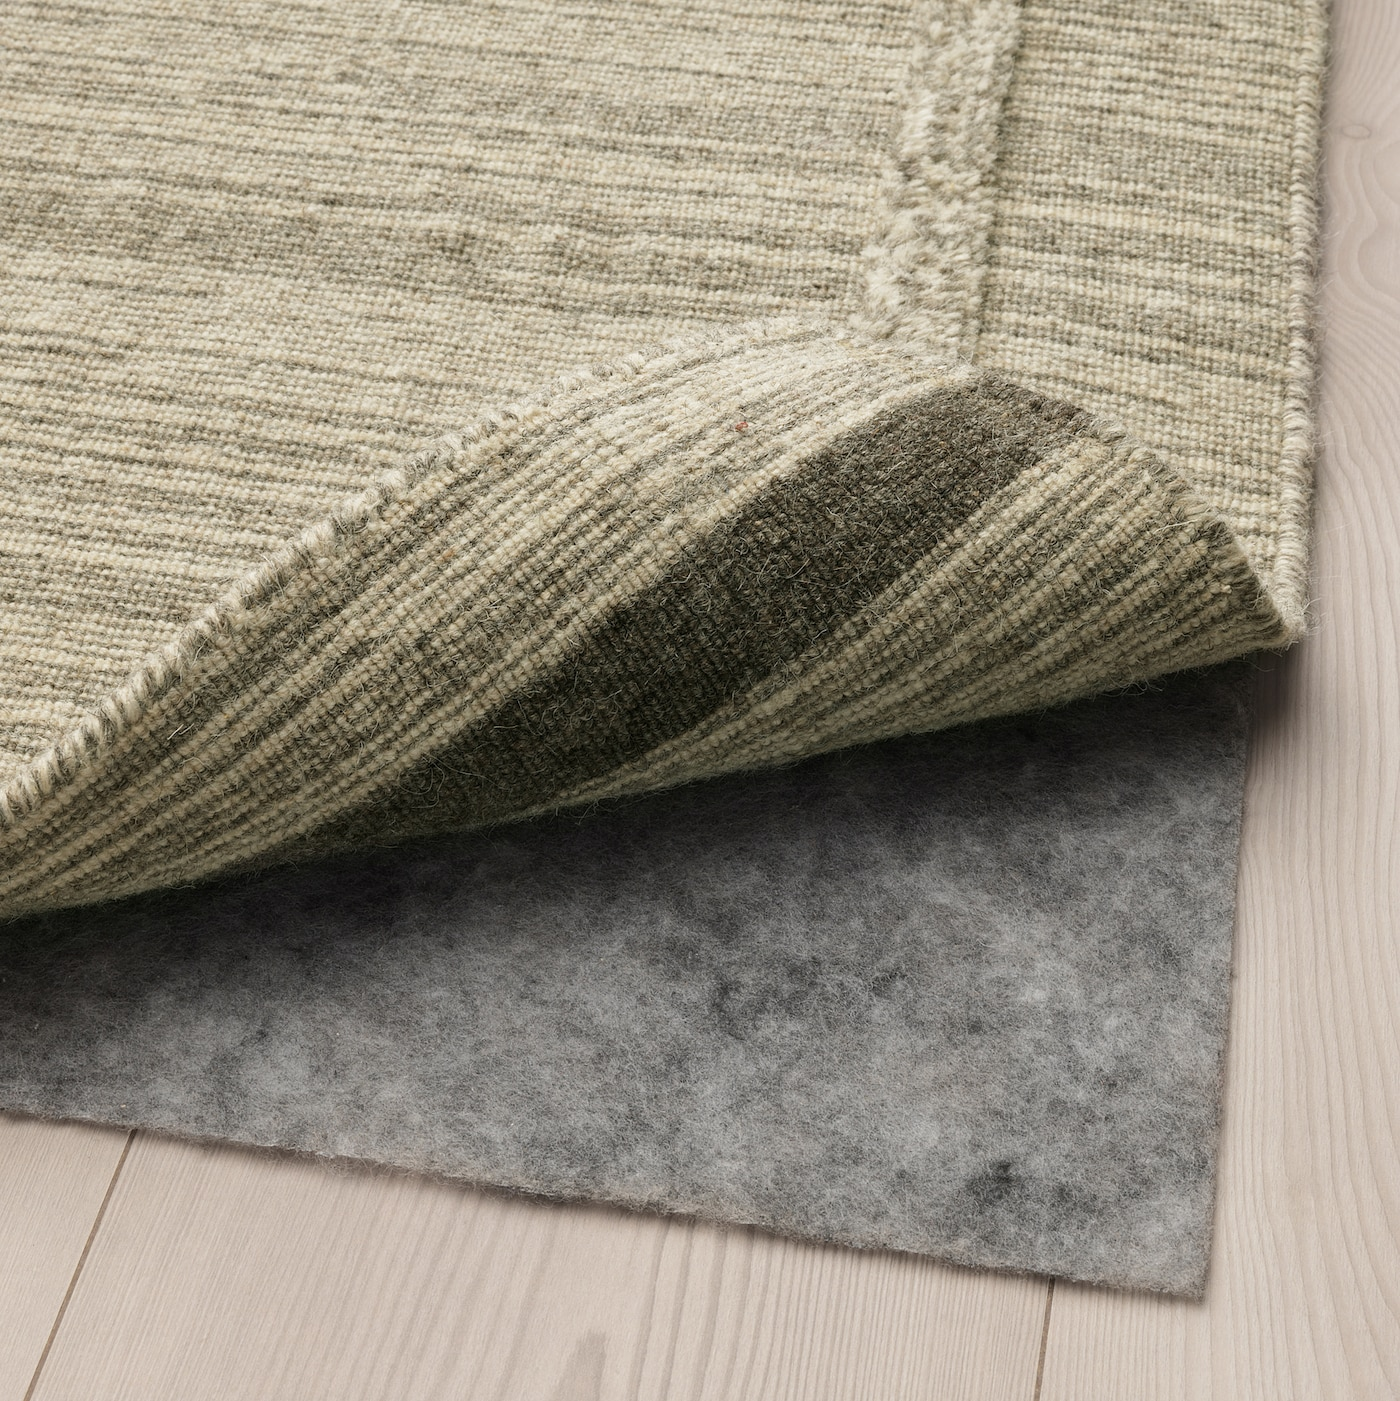 IKEA STOPP FILT rug underlay with anti-slip Protects the floor because it collects dirt and gravel.